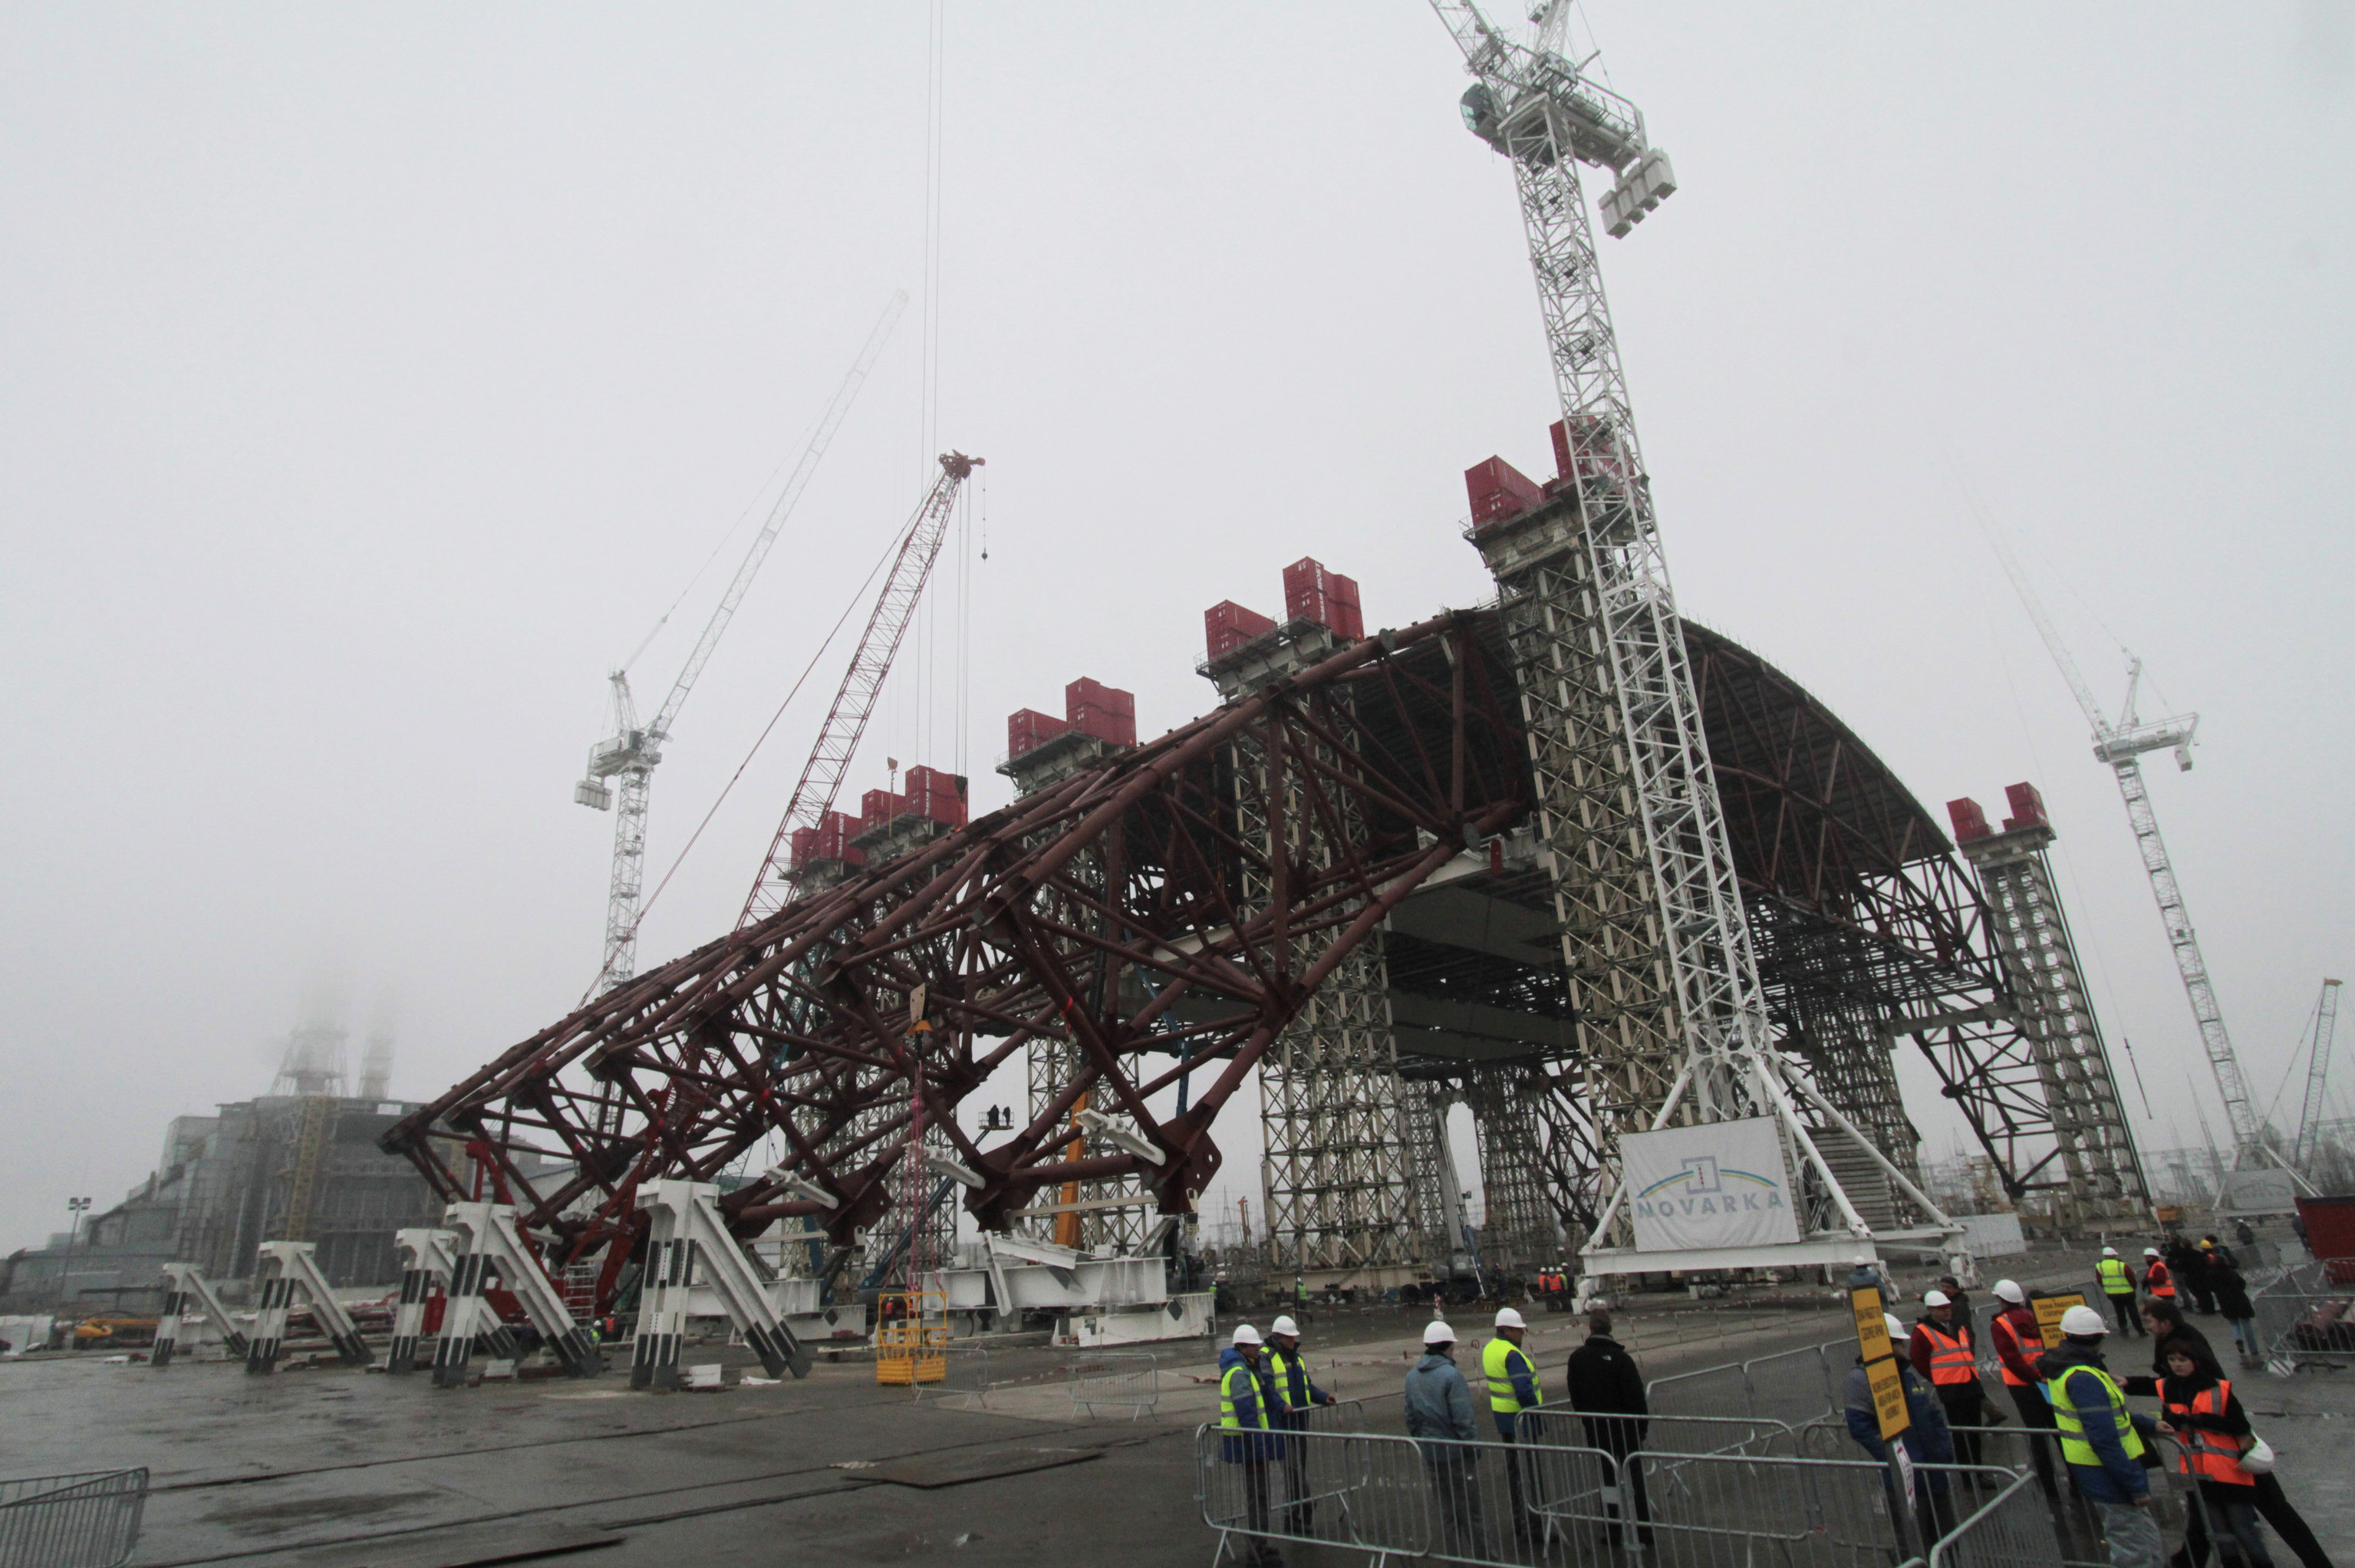 Completing first stage of New Safe Confinement project at Chernobyl Power Plant